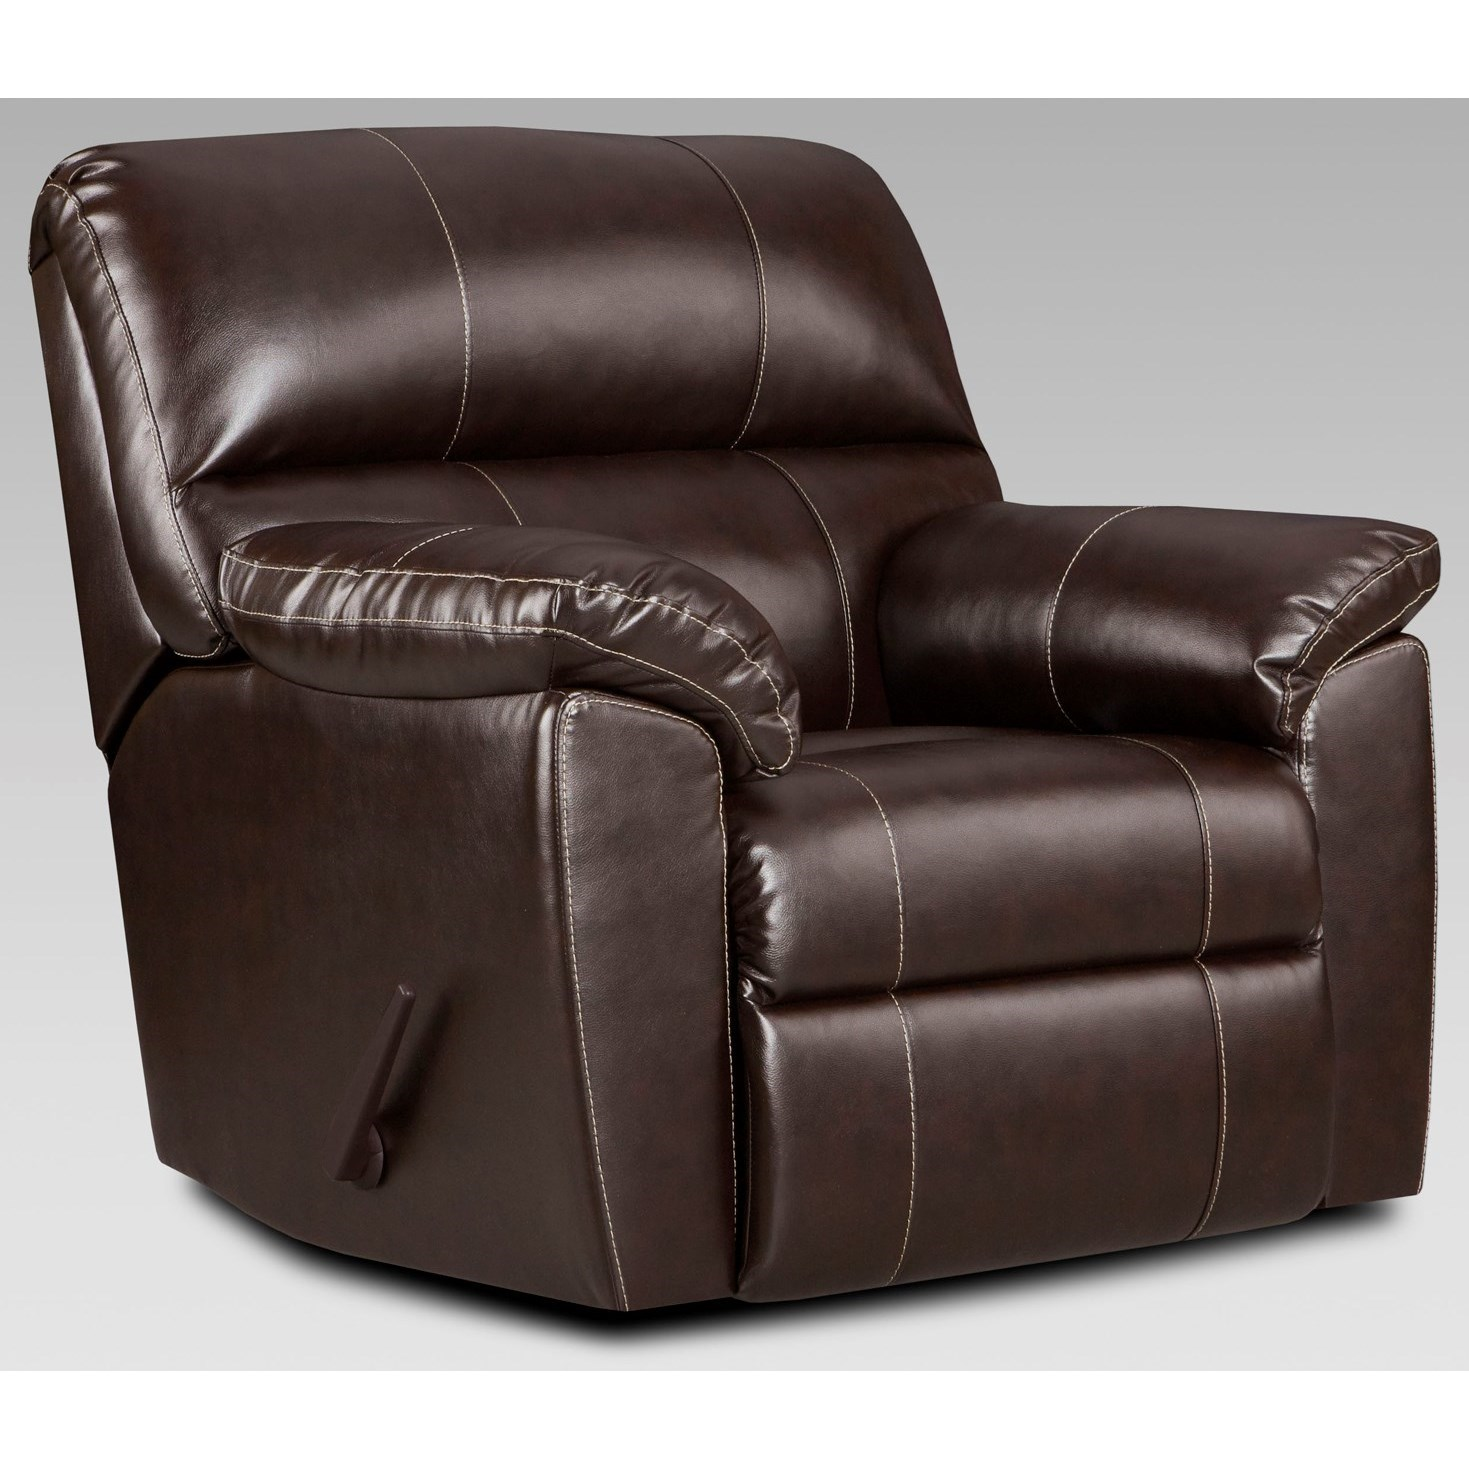 2450 Recliner by Affordable Furniture at Wilcox Furniture